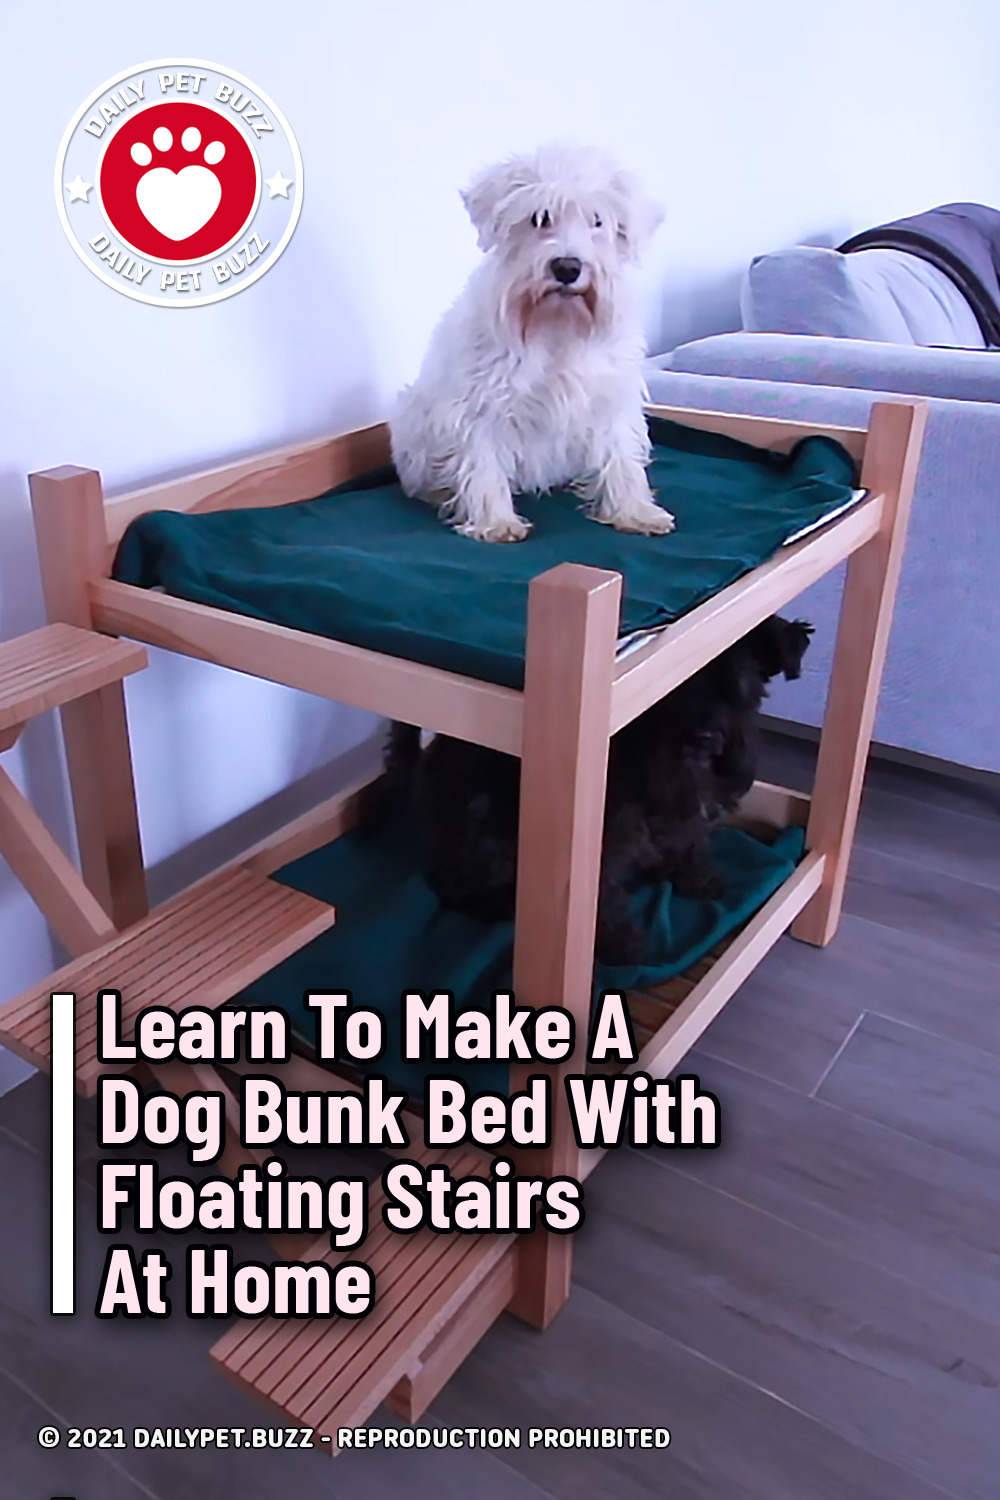 Learn To Make A Dog Bunk Bed With Floating Stairs At Home